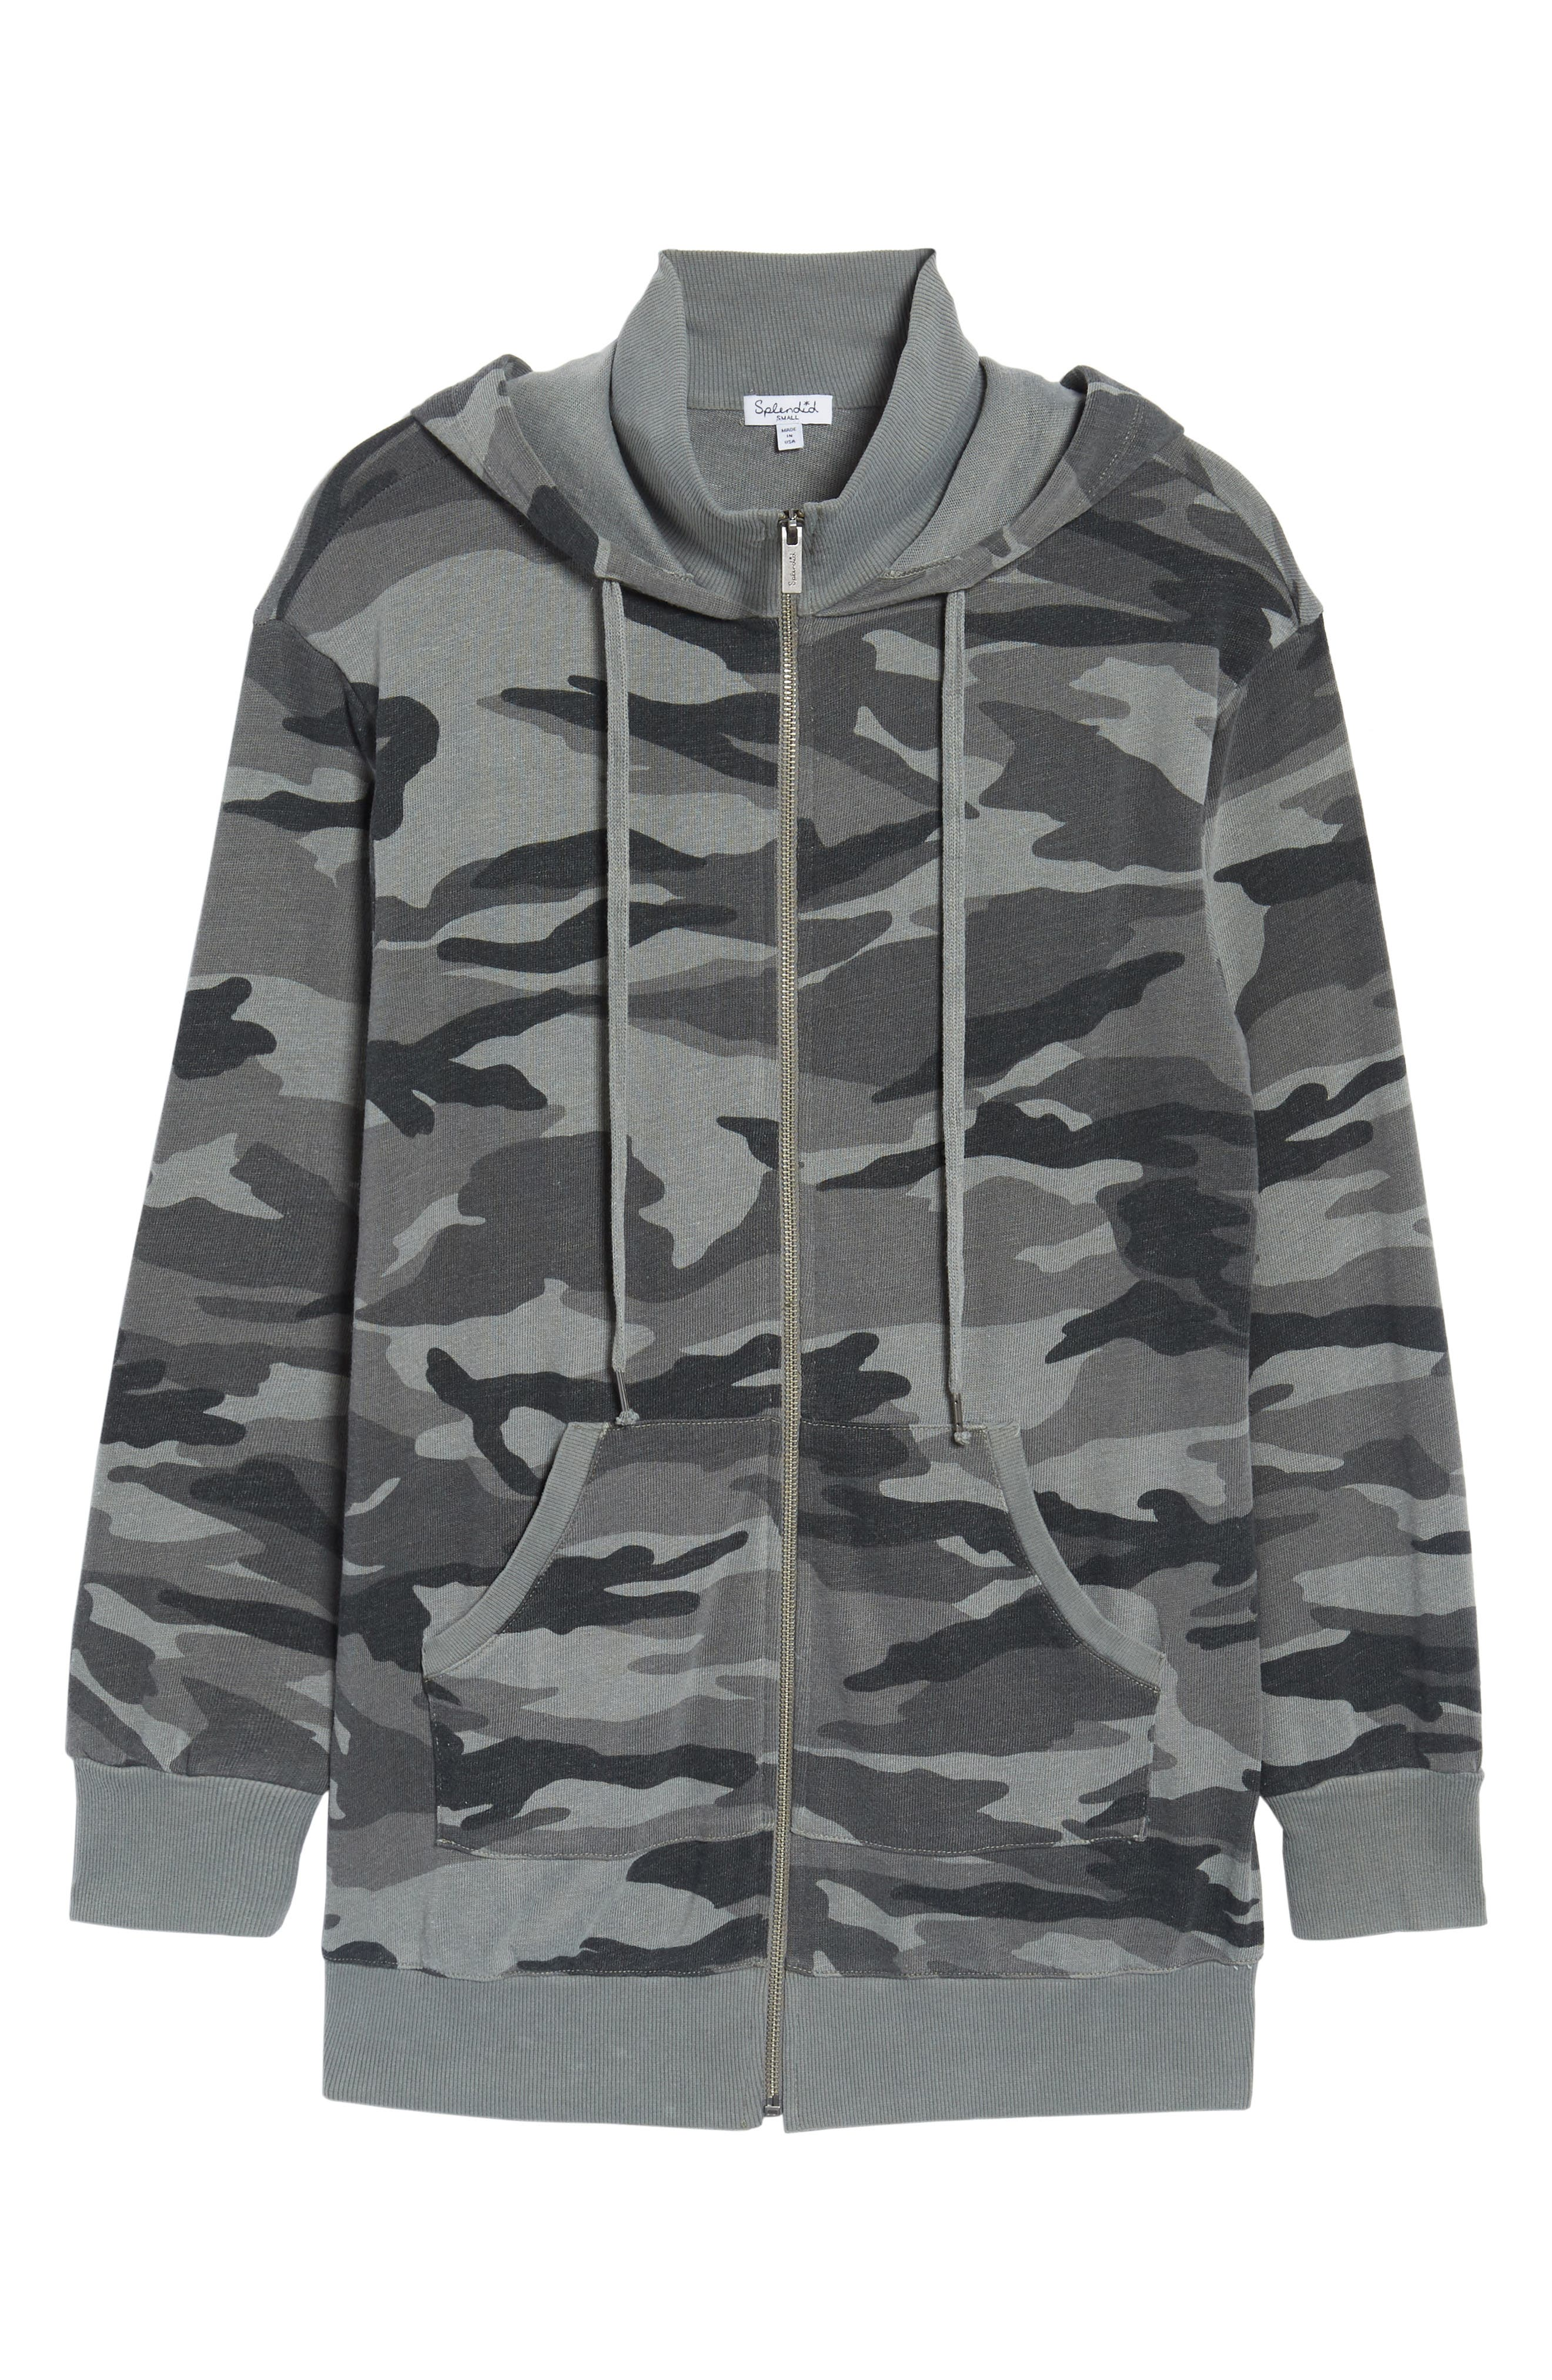 French Terry Camo Sweatshirt,                             Alternate thumbnail 6, color,                             301